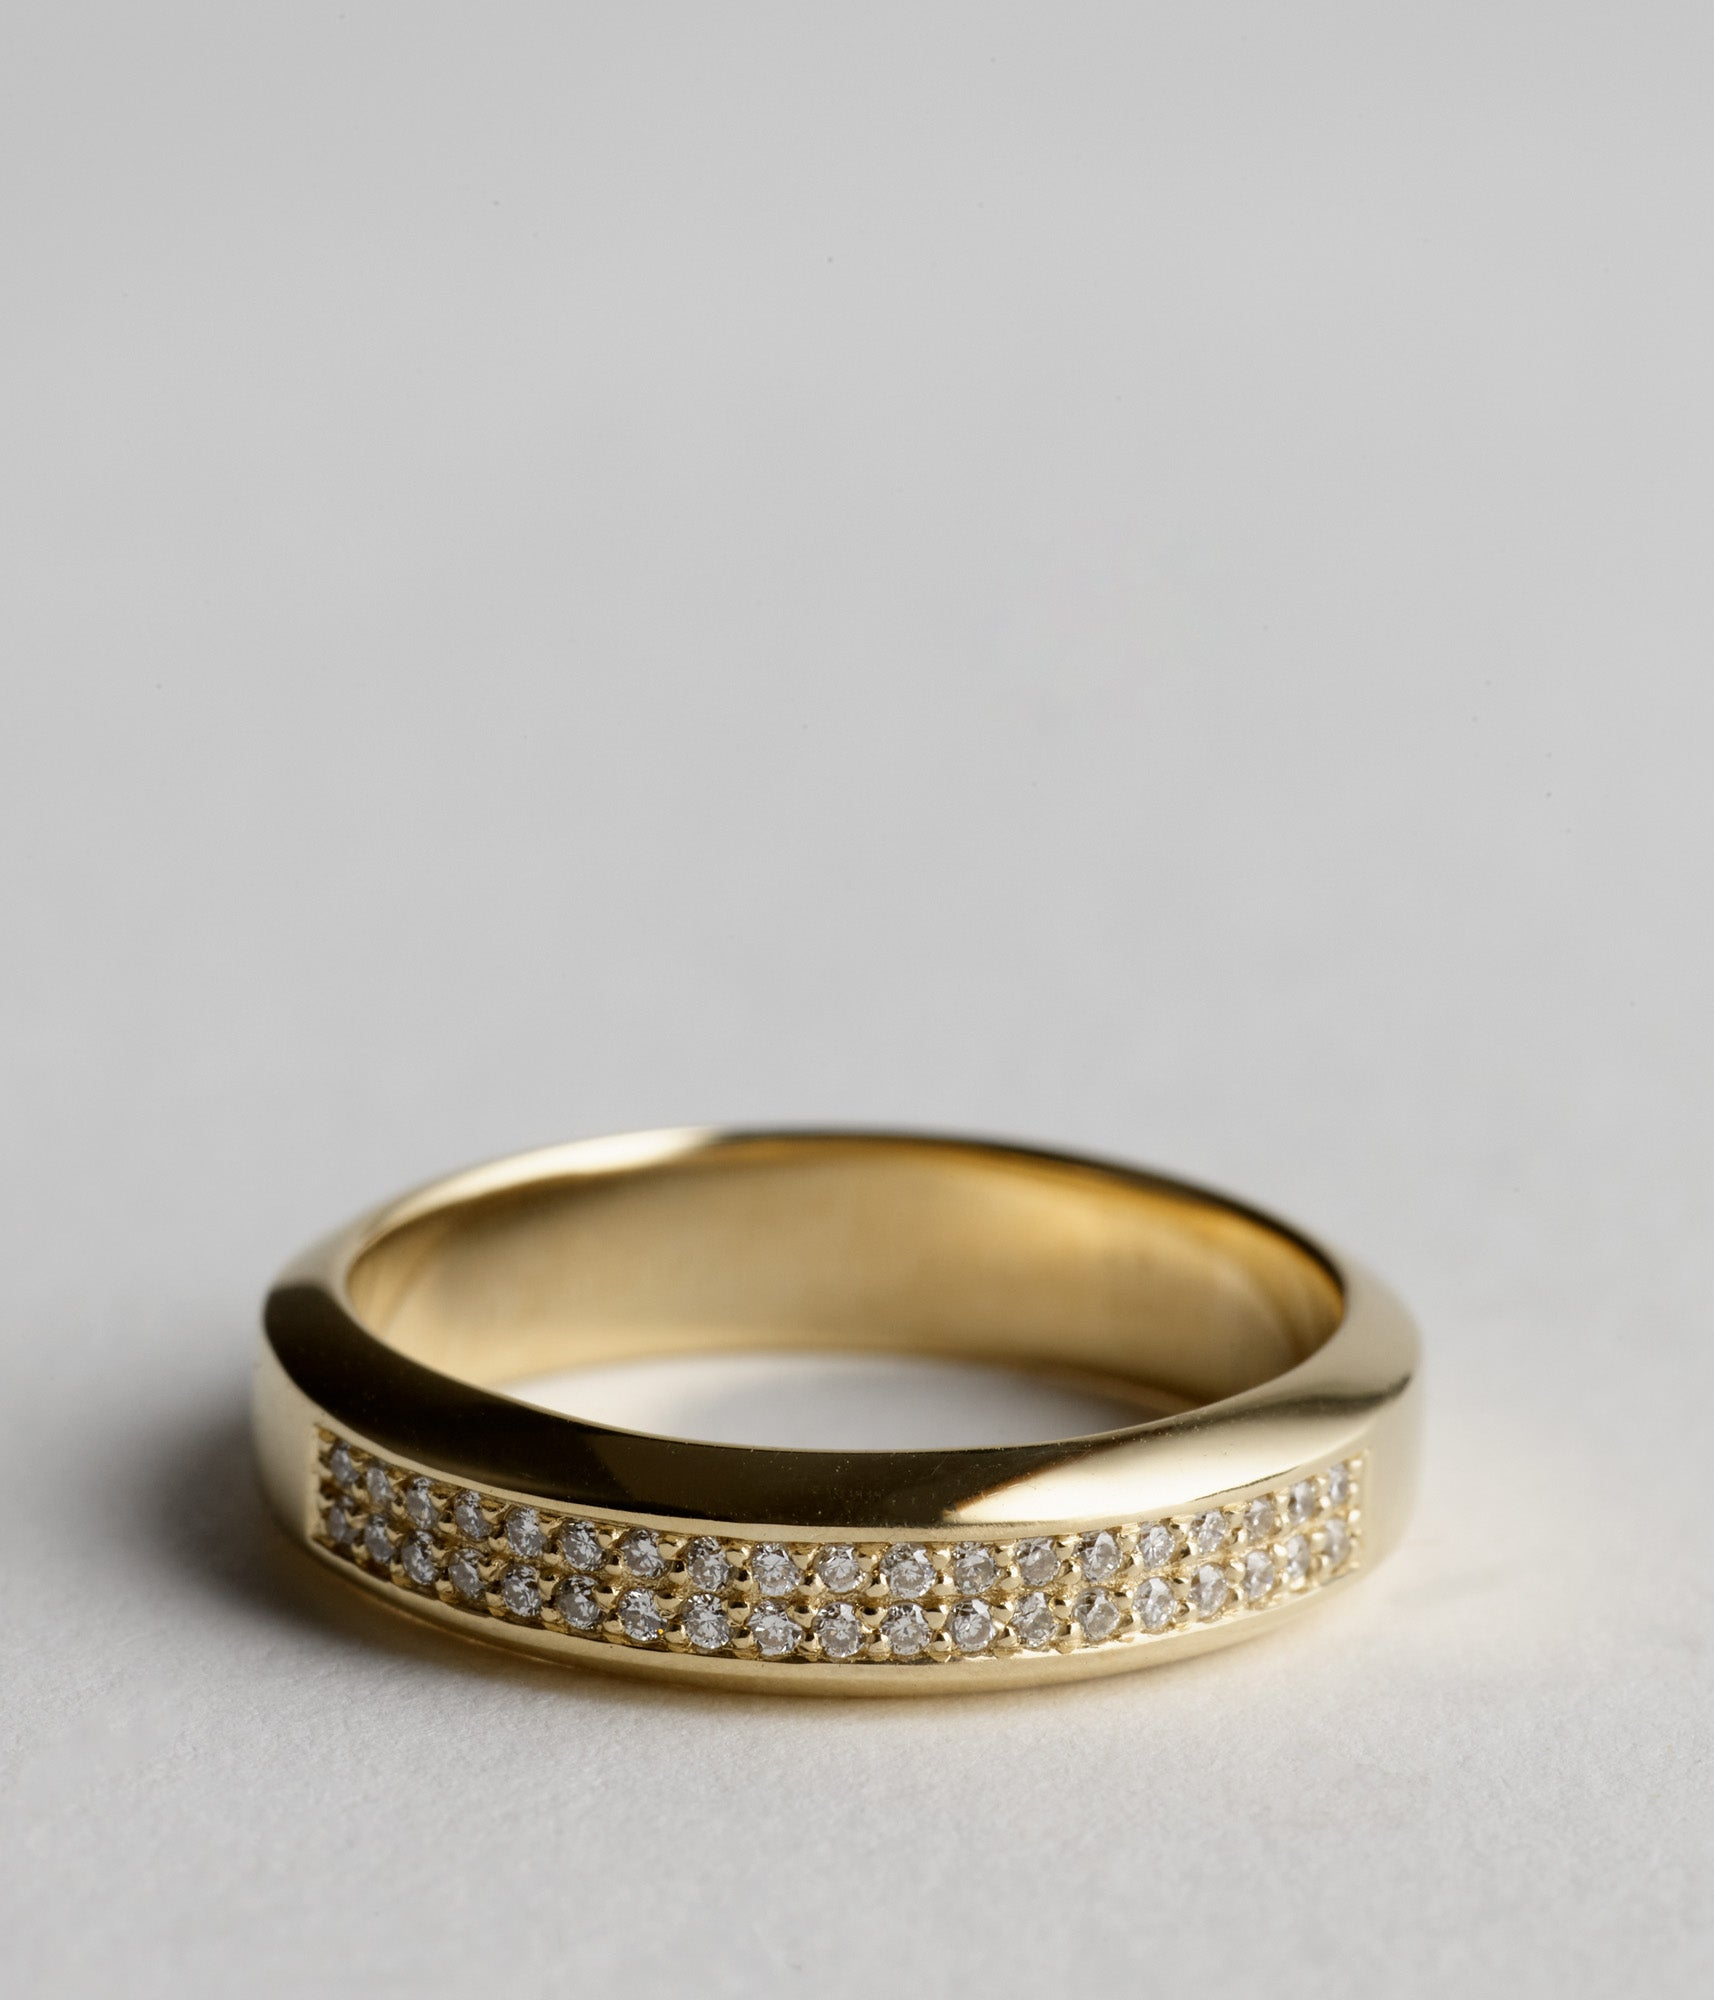 Song Ring - 9ct yellow gold